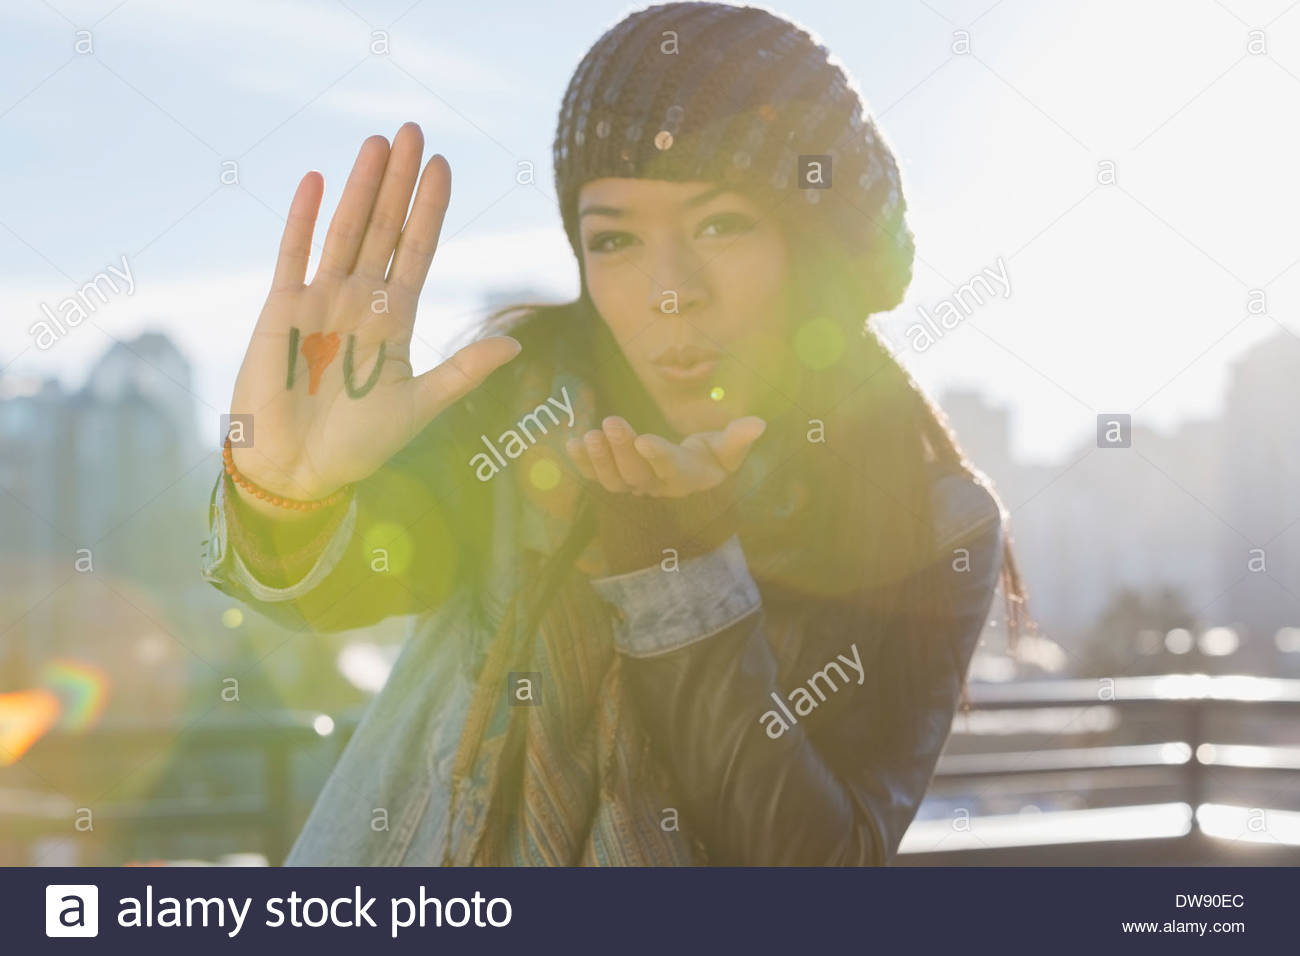 Woman showing I Love You sign and blowing kiss outdoors - Stock Image